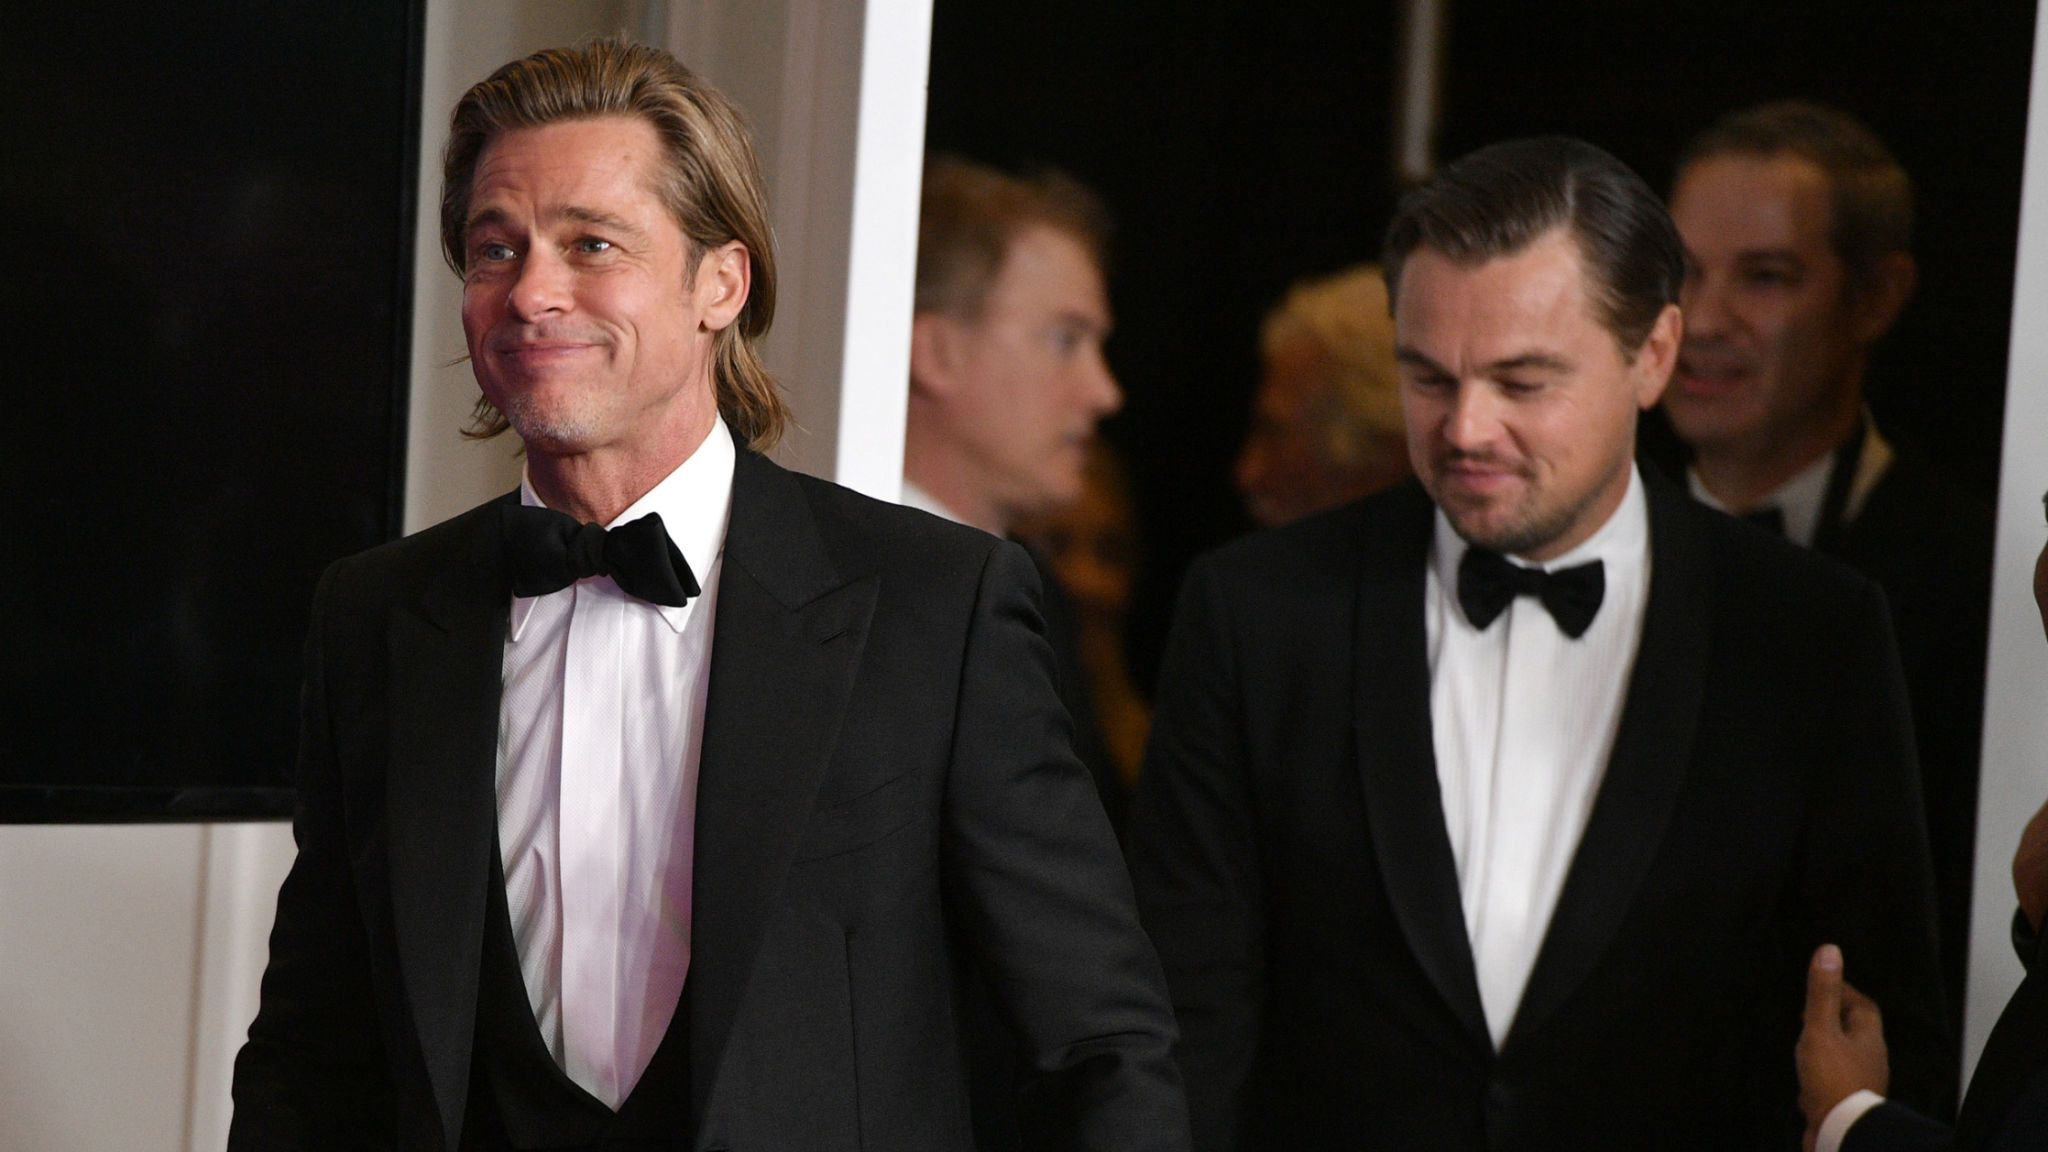 Brad Pitt and Leonardo DiCaprio at the Golden Globes 2020